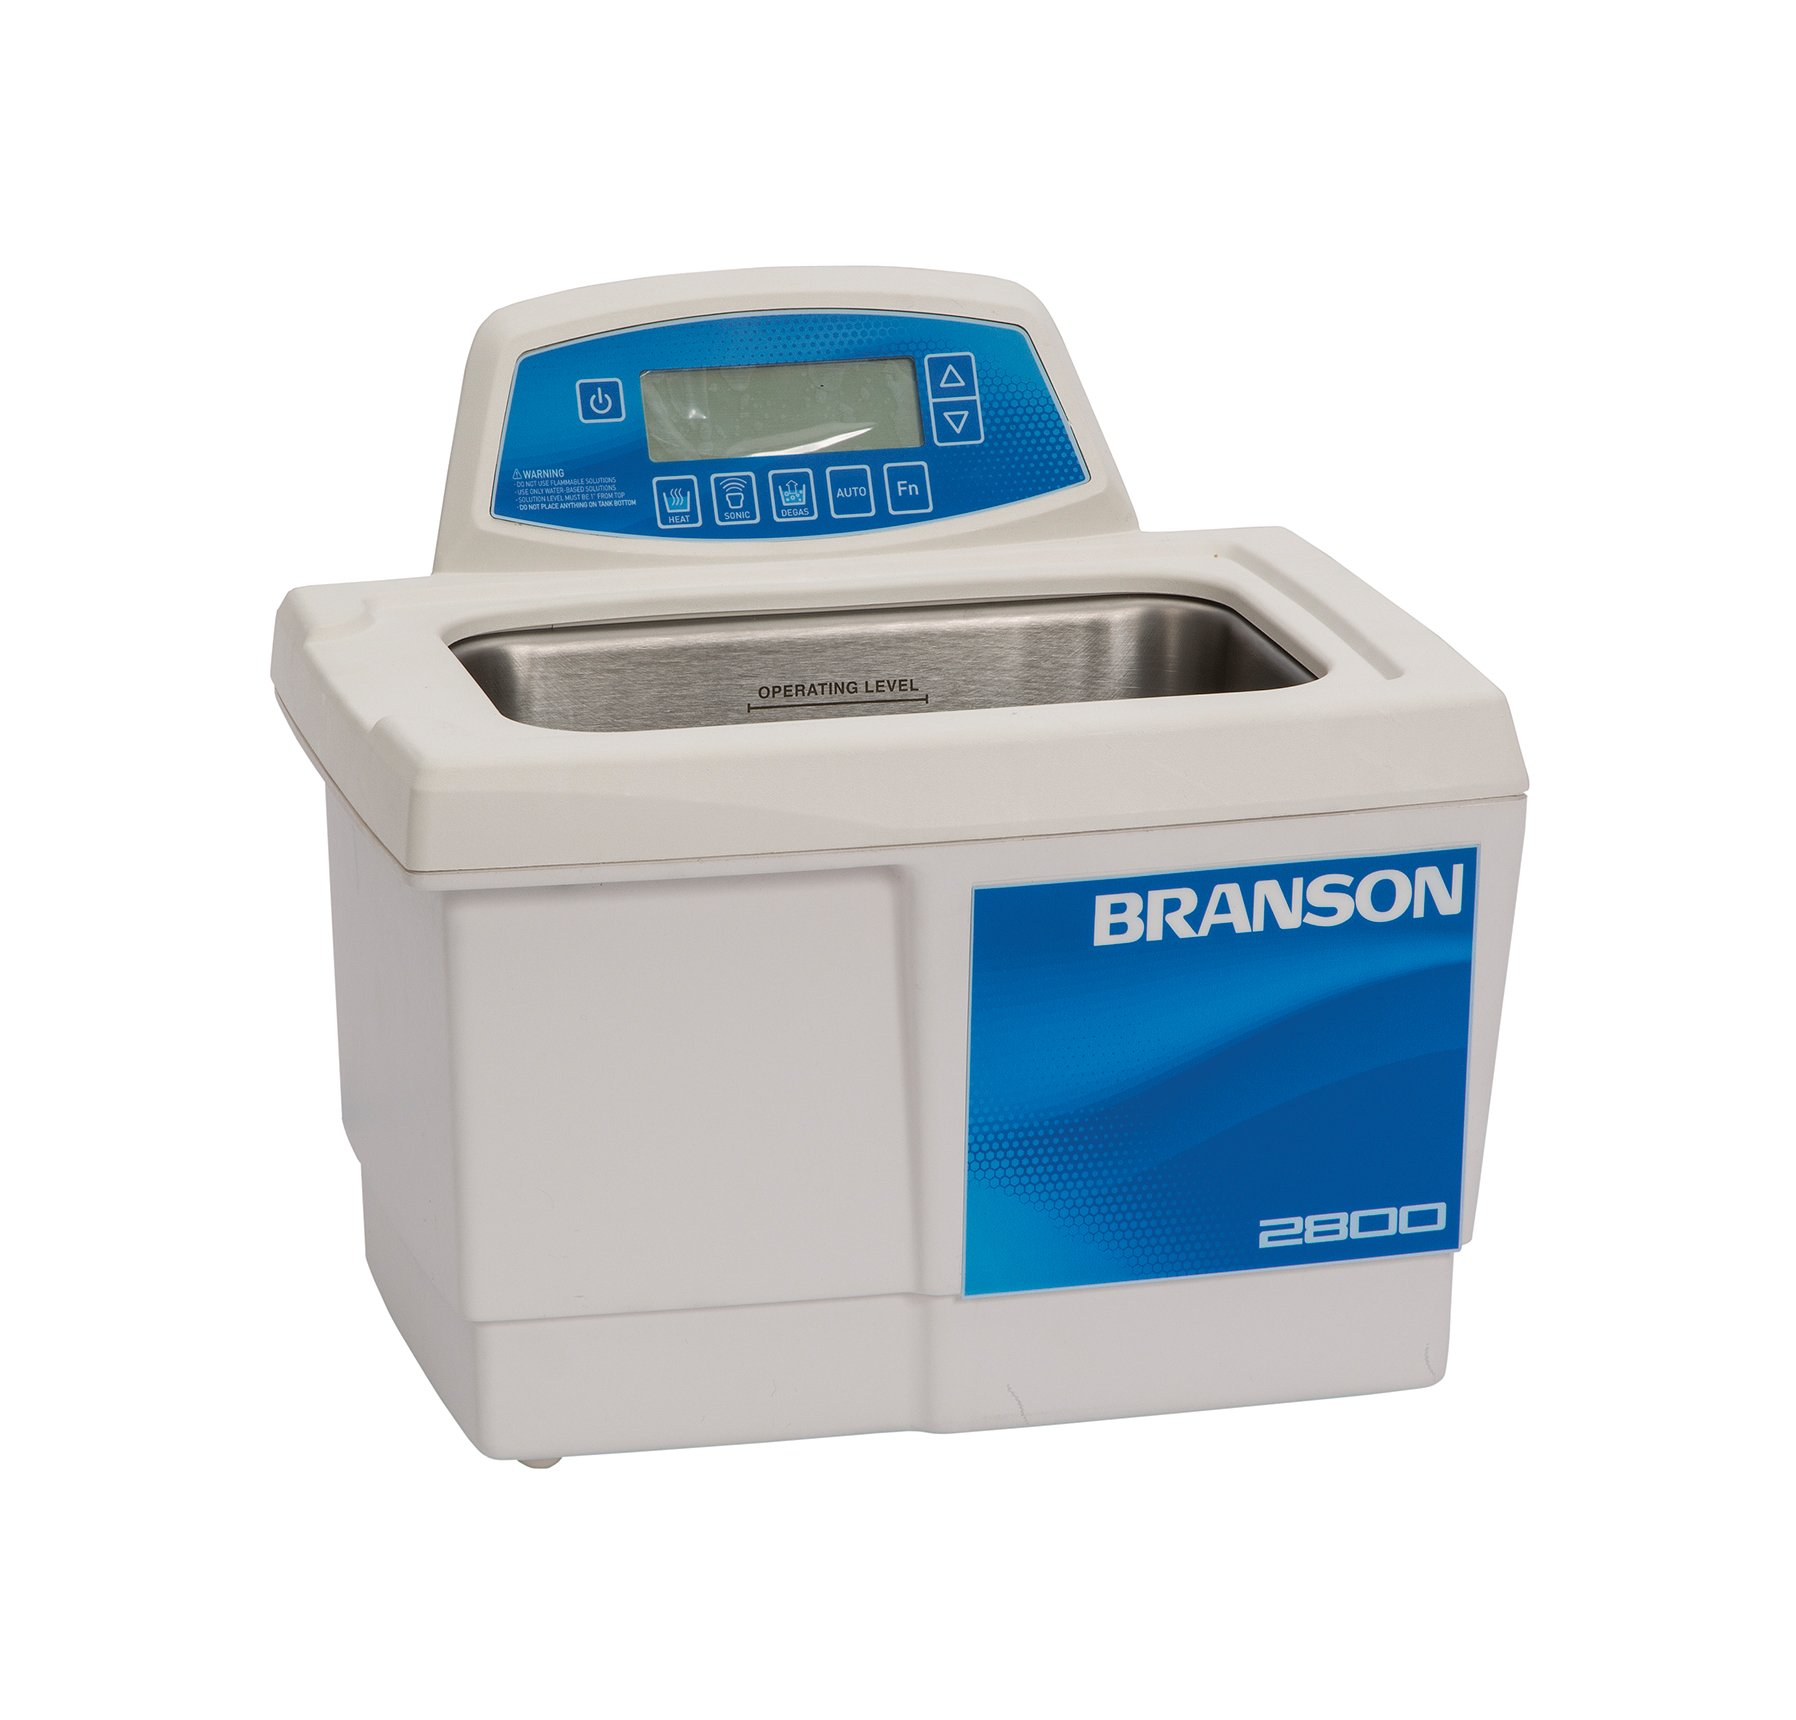 Branson CPX-952-218R Series CPXH Digital Cleaning Bath with Digital Timer and Heater, 0.75 Gallons Capacity, 120V